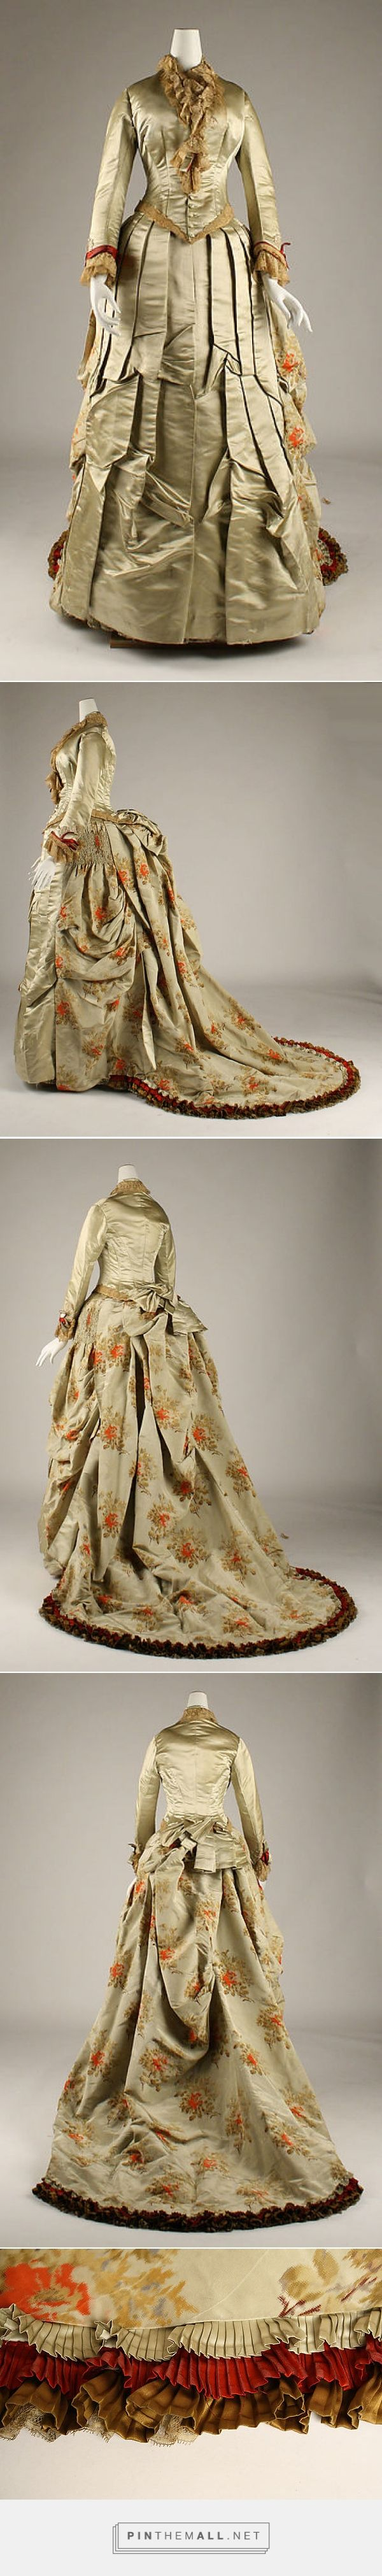 Dress by House of Worth 1875-76 French | The Metropolitan Museum of Art